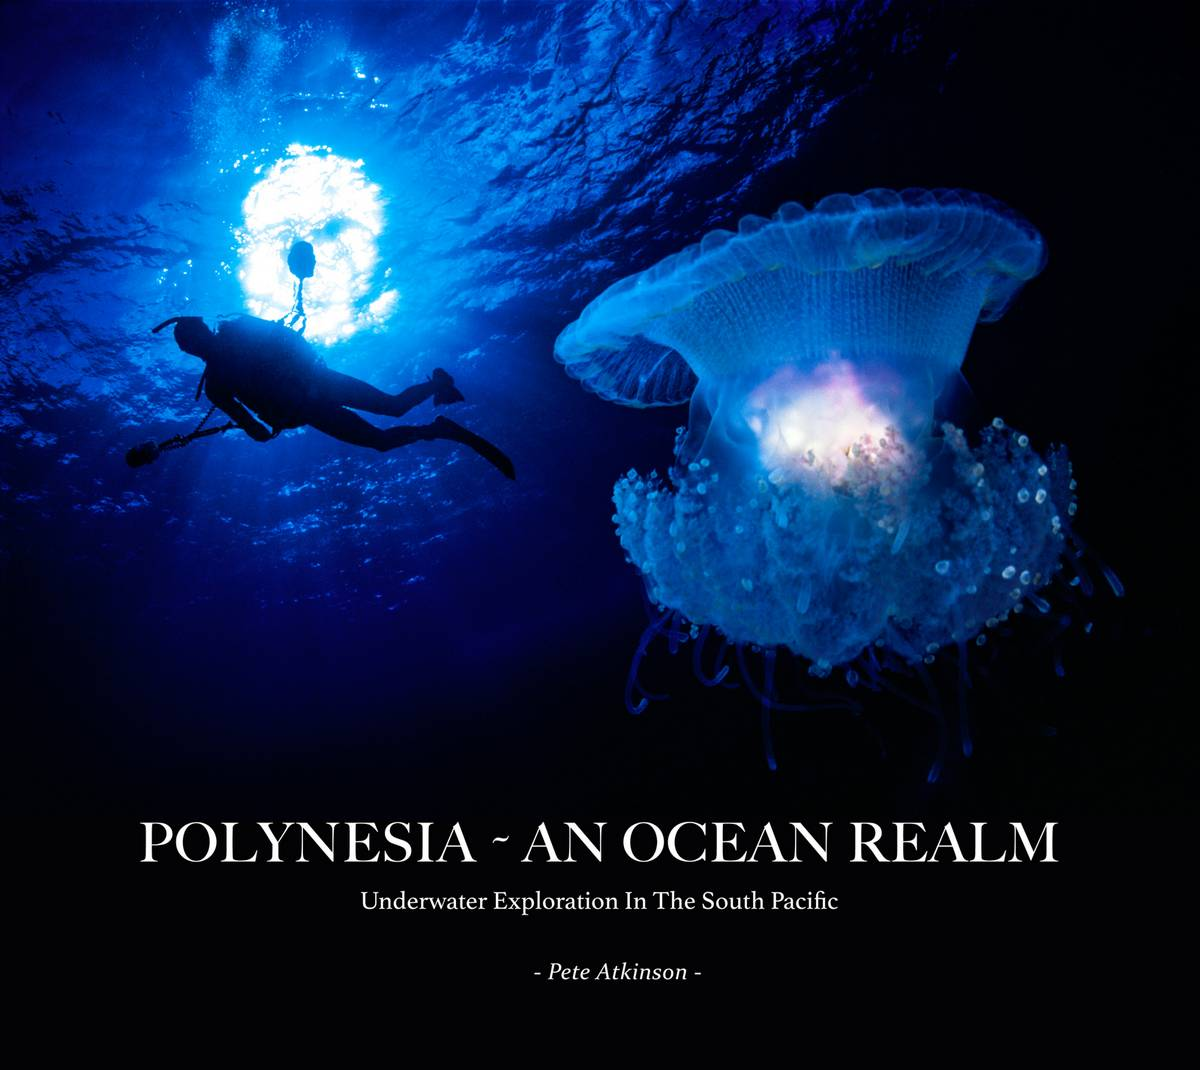 Polynesia - An Ocean Realm 13x11 Cover FINAL (Resized).indd